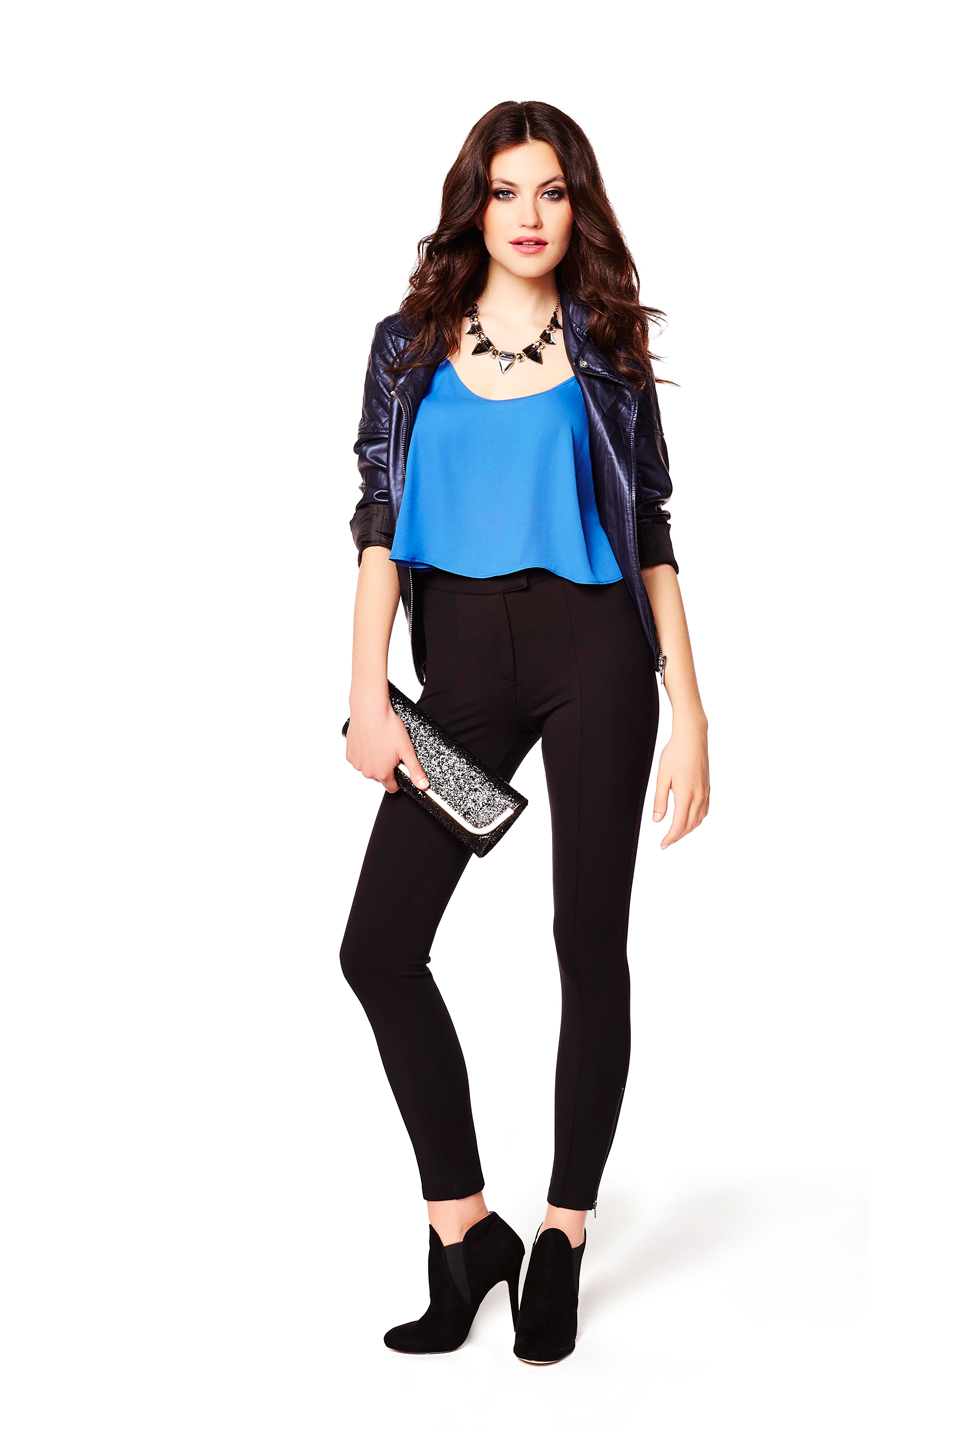 outfit9-960px-wide.jpg